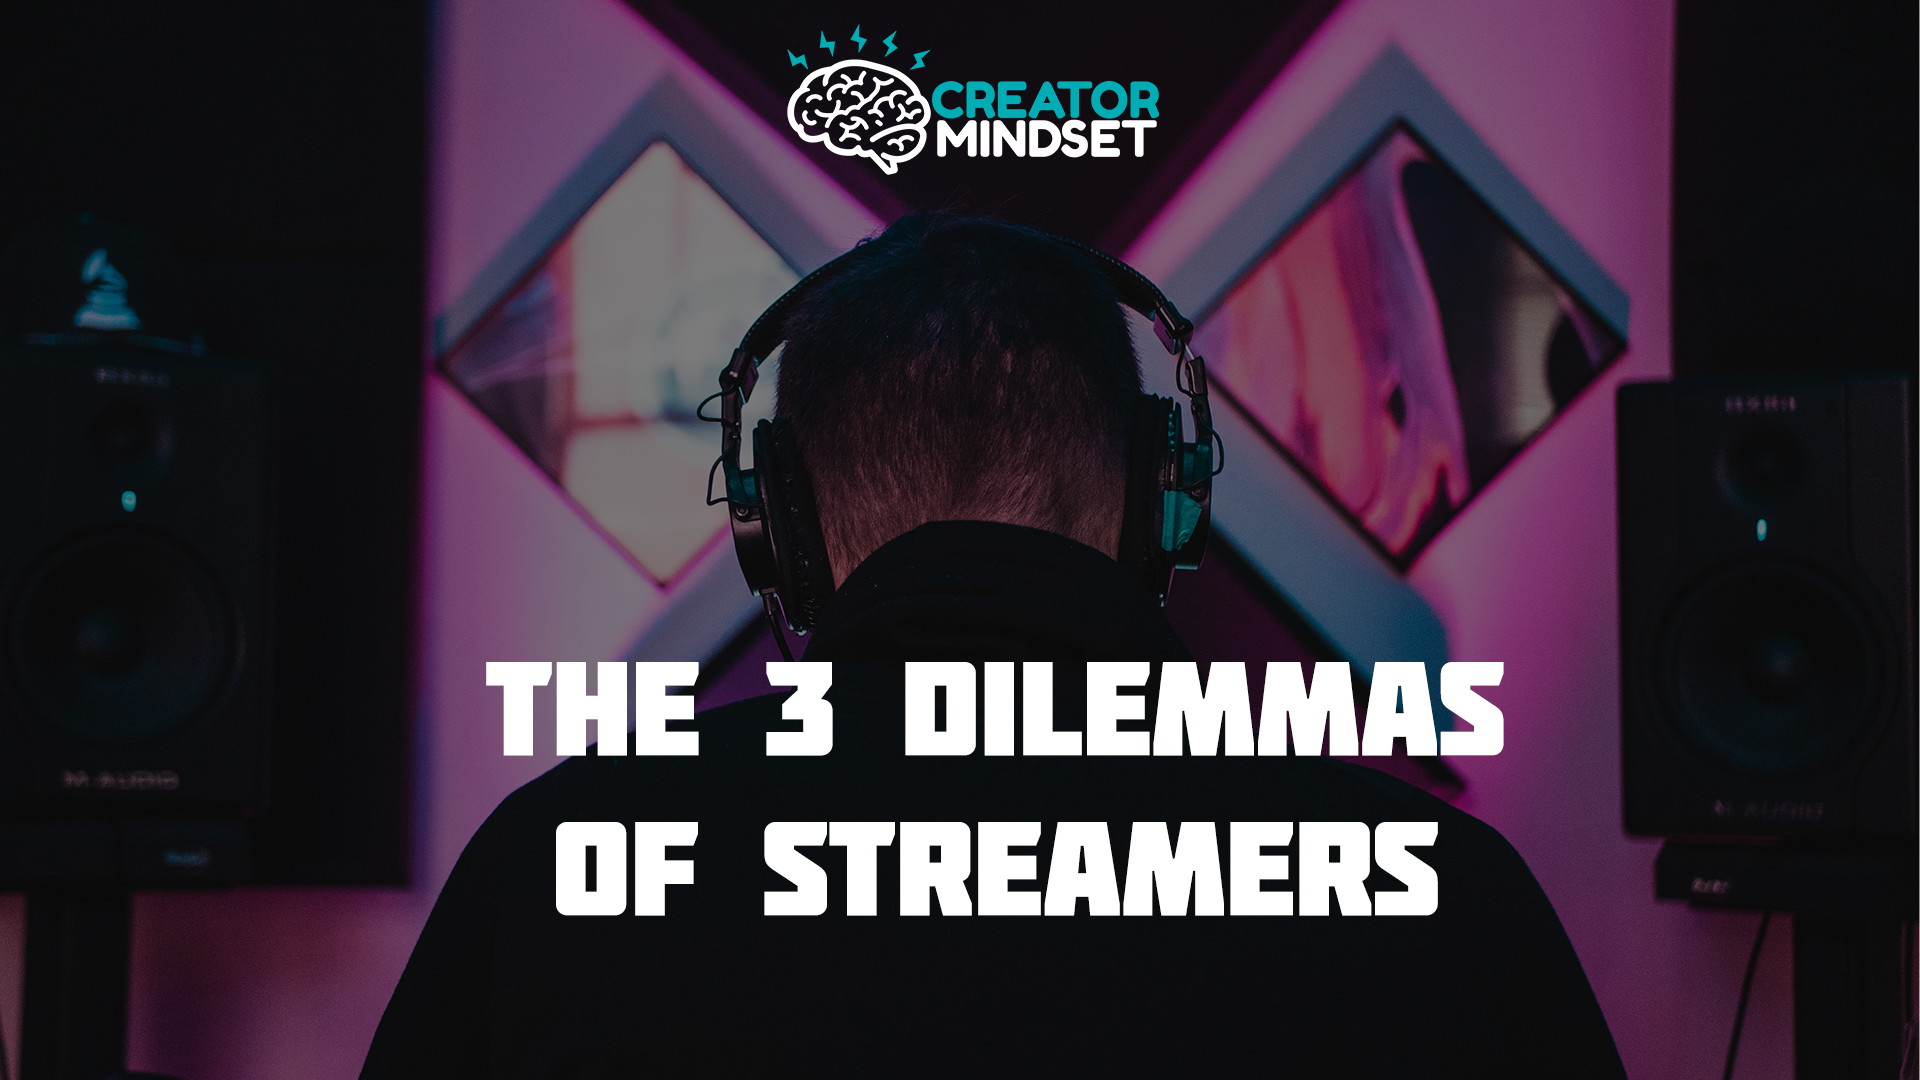 We are living in an era where anyone who has ever held a camera thinks they could be an influencer. On live streaming platforms like Twitch, Youtube and Facebook, we are watching new stars being born every day.